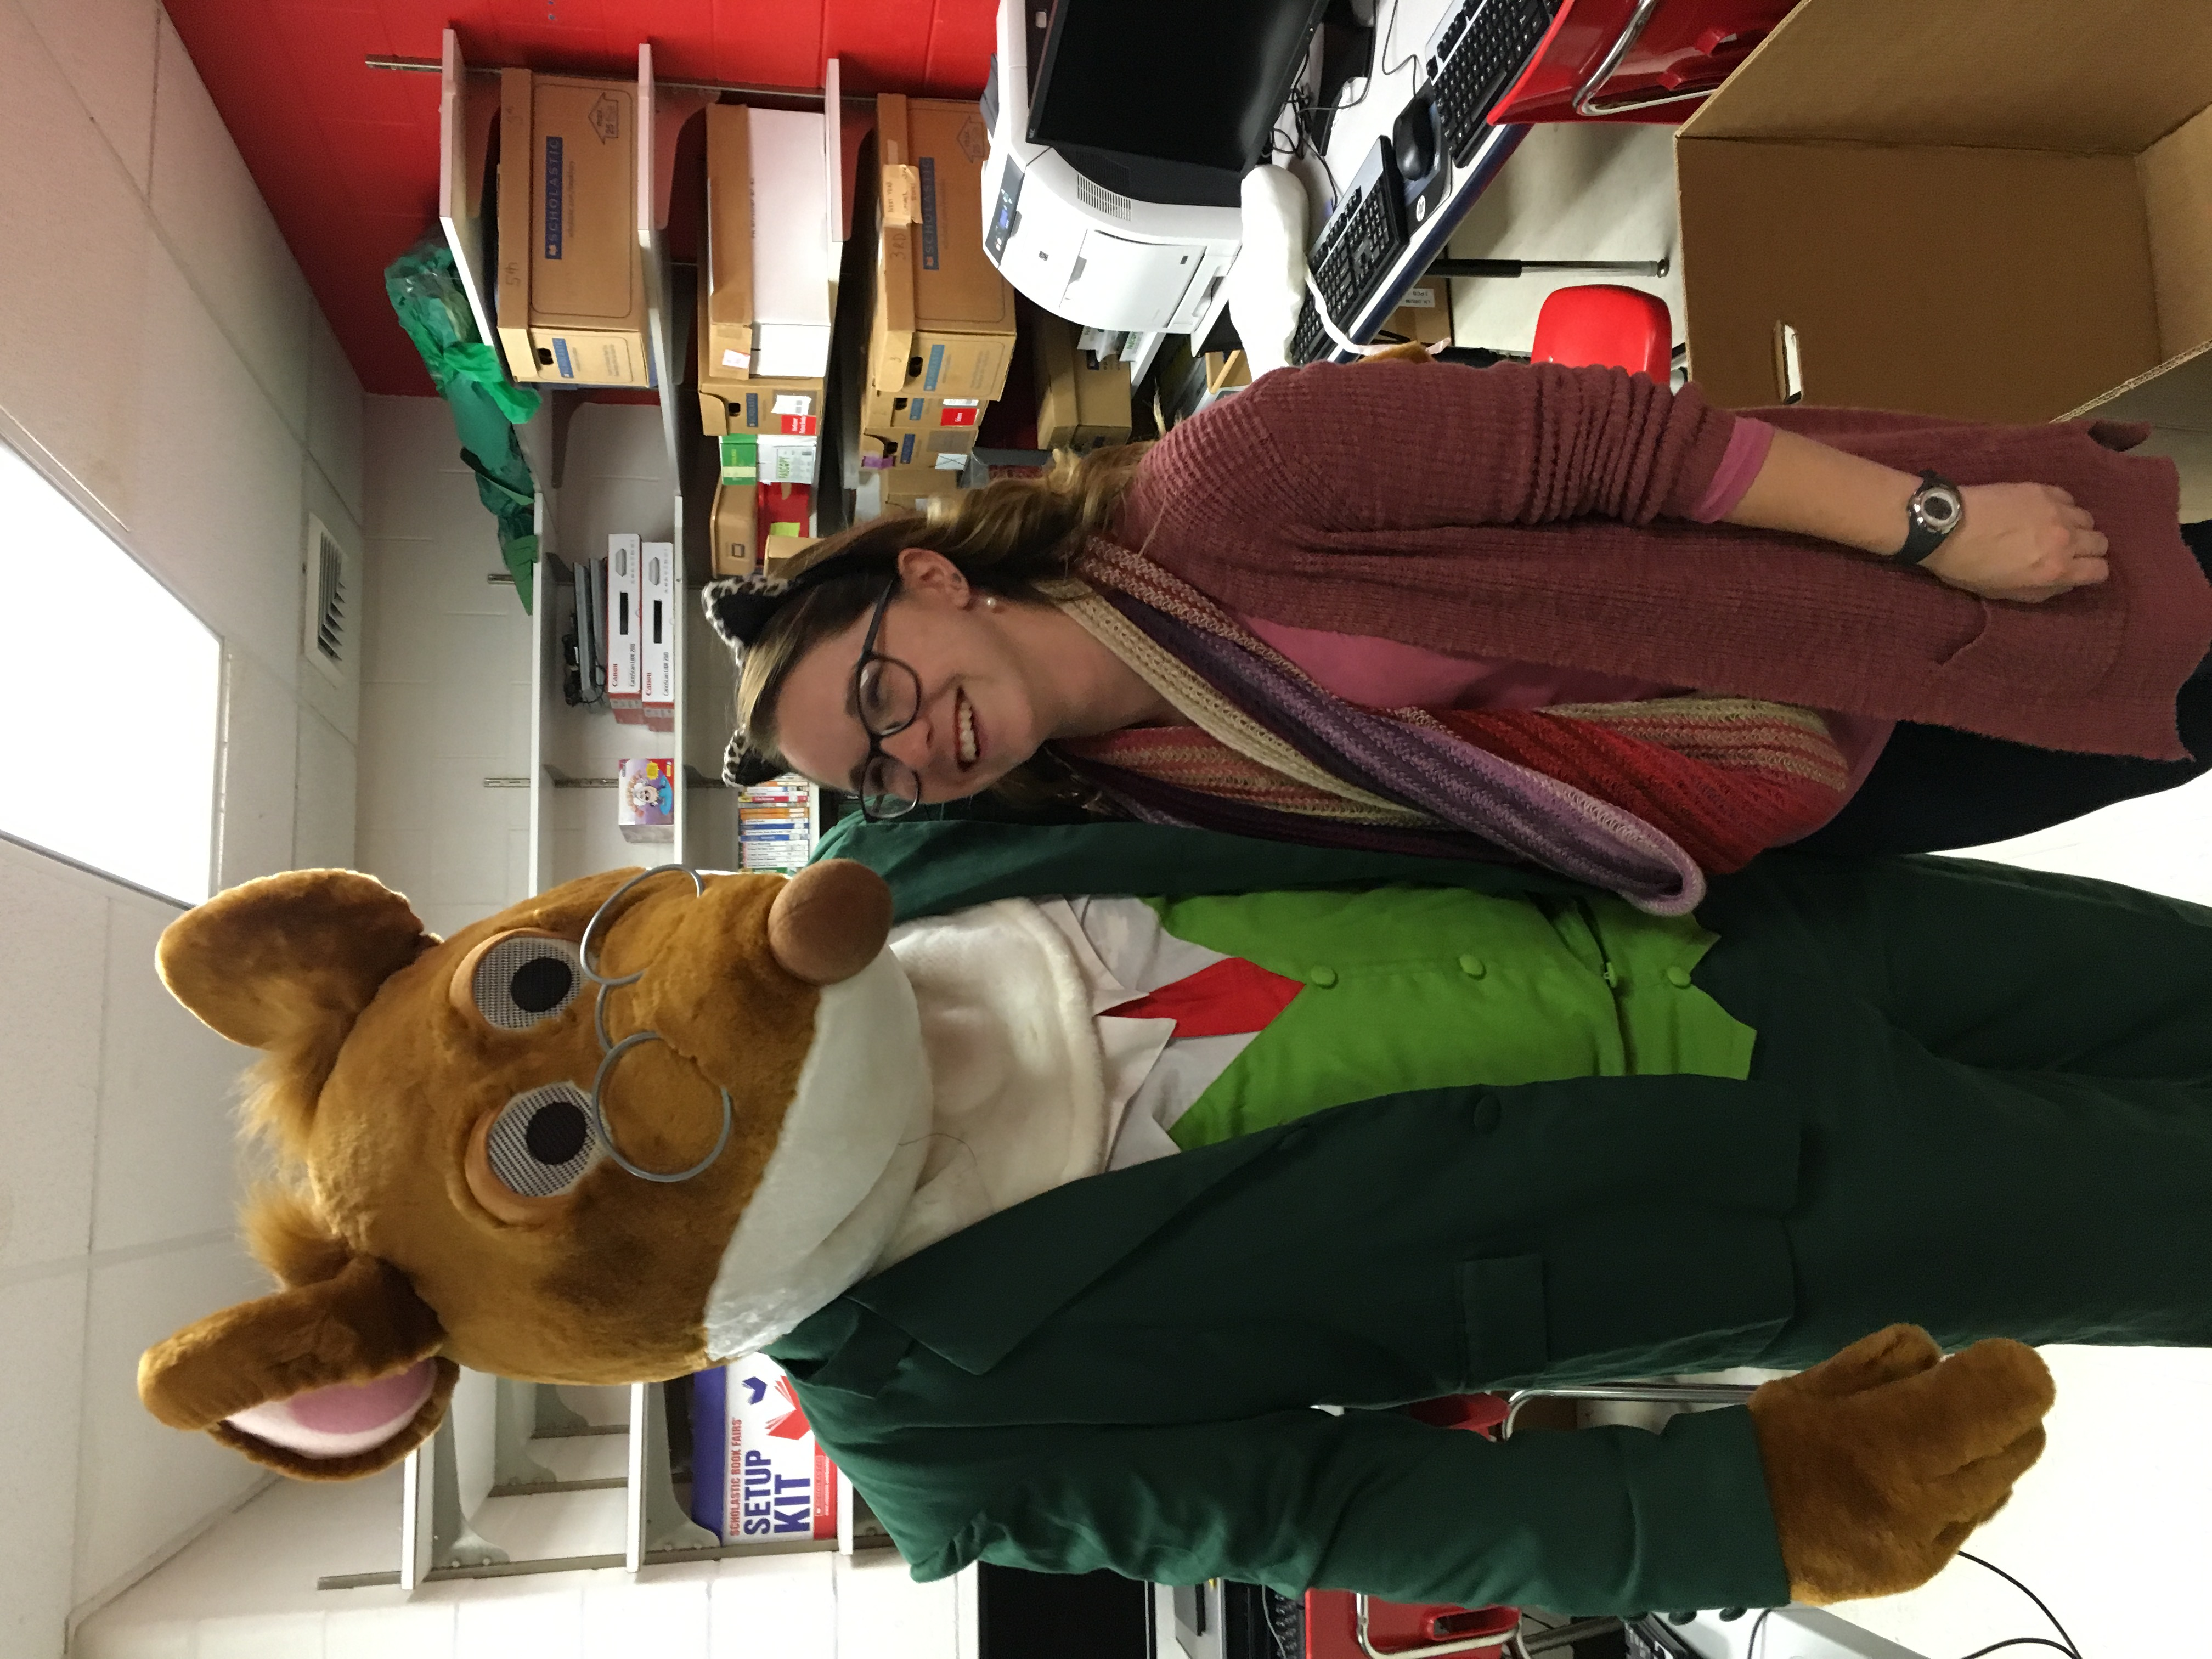 Geronimo Stilton at the SES BookFair